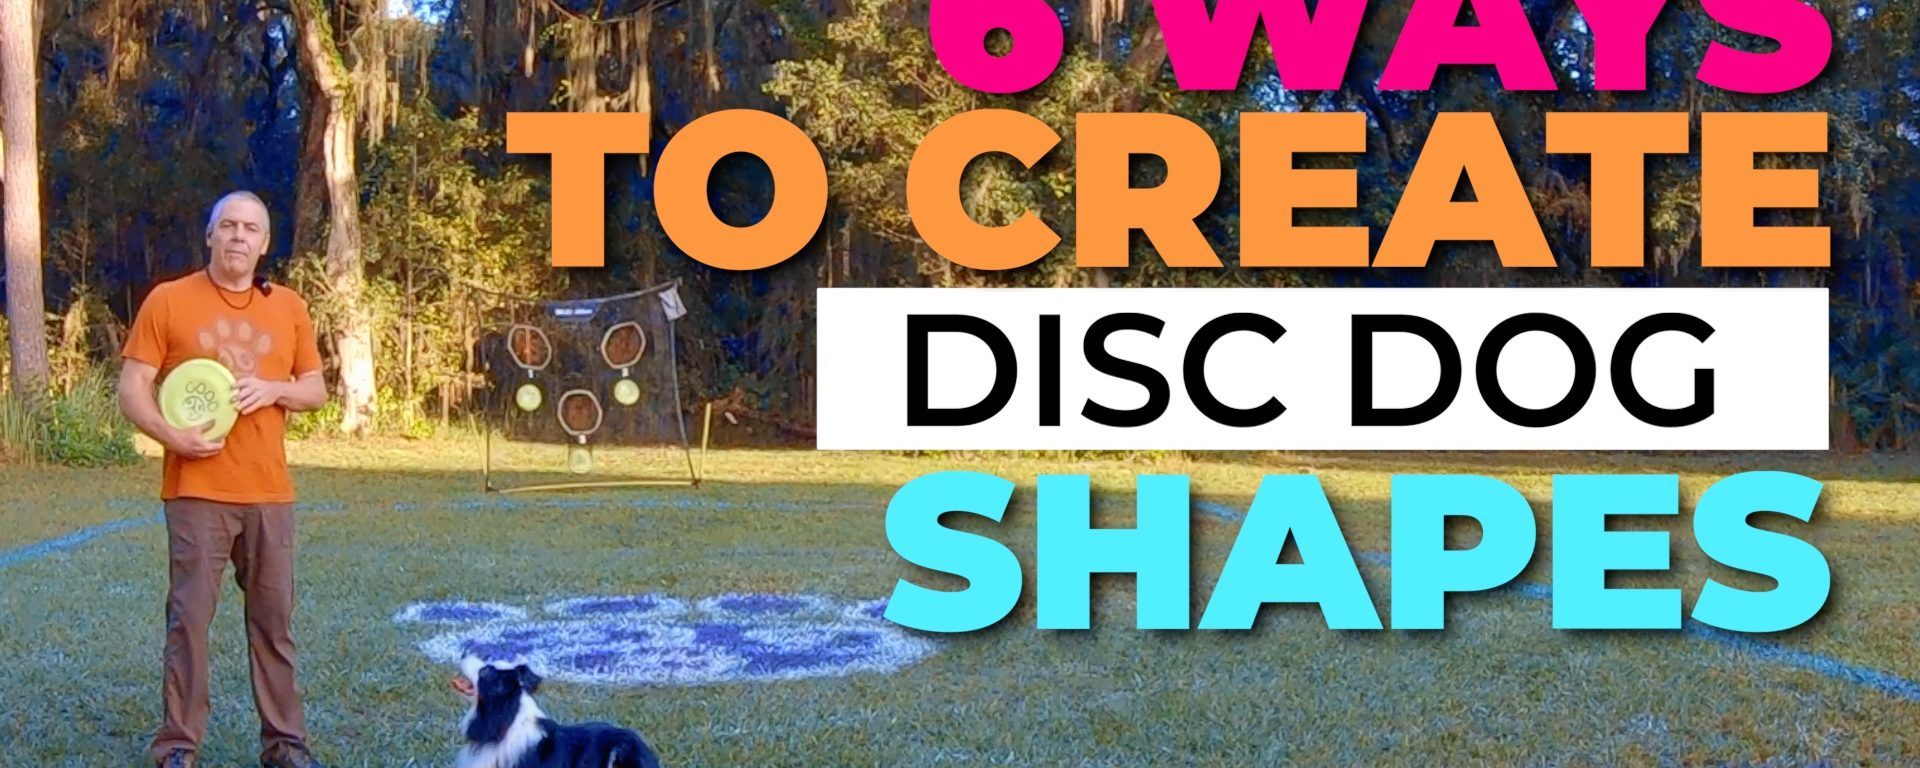 6 Ways to Create DiscDog Shapes and Improve Team Movement & Flow